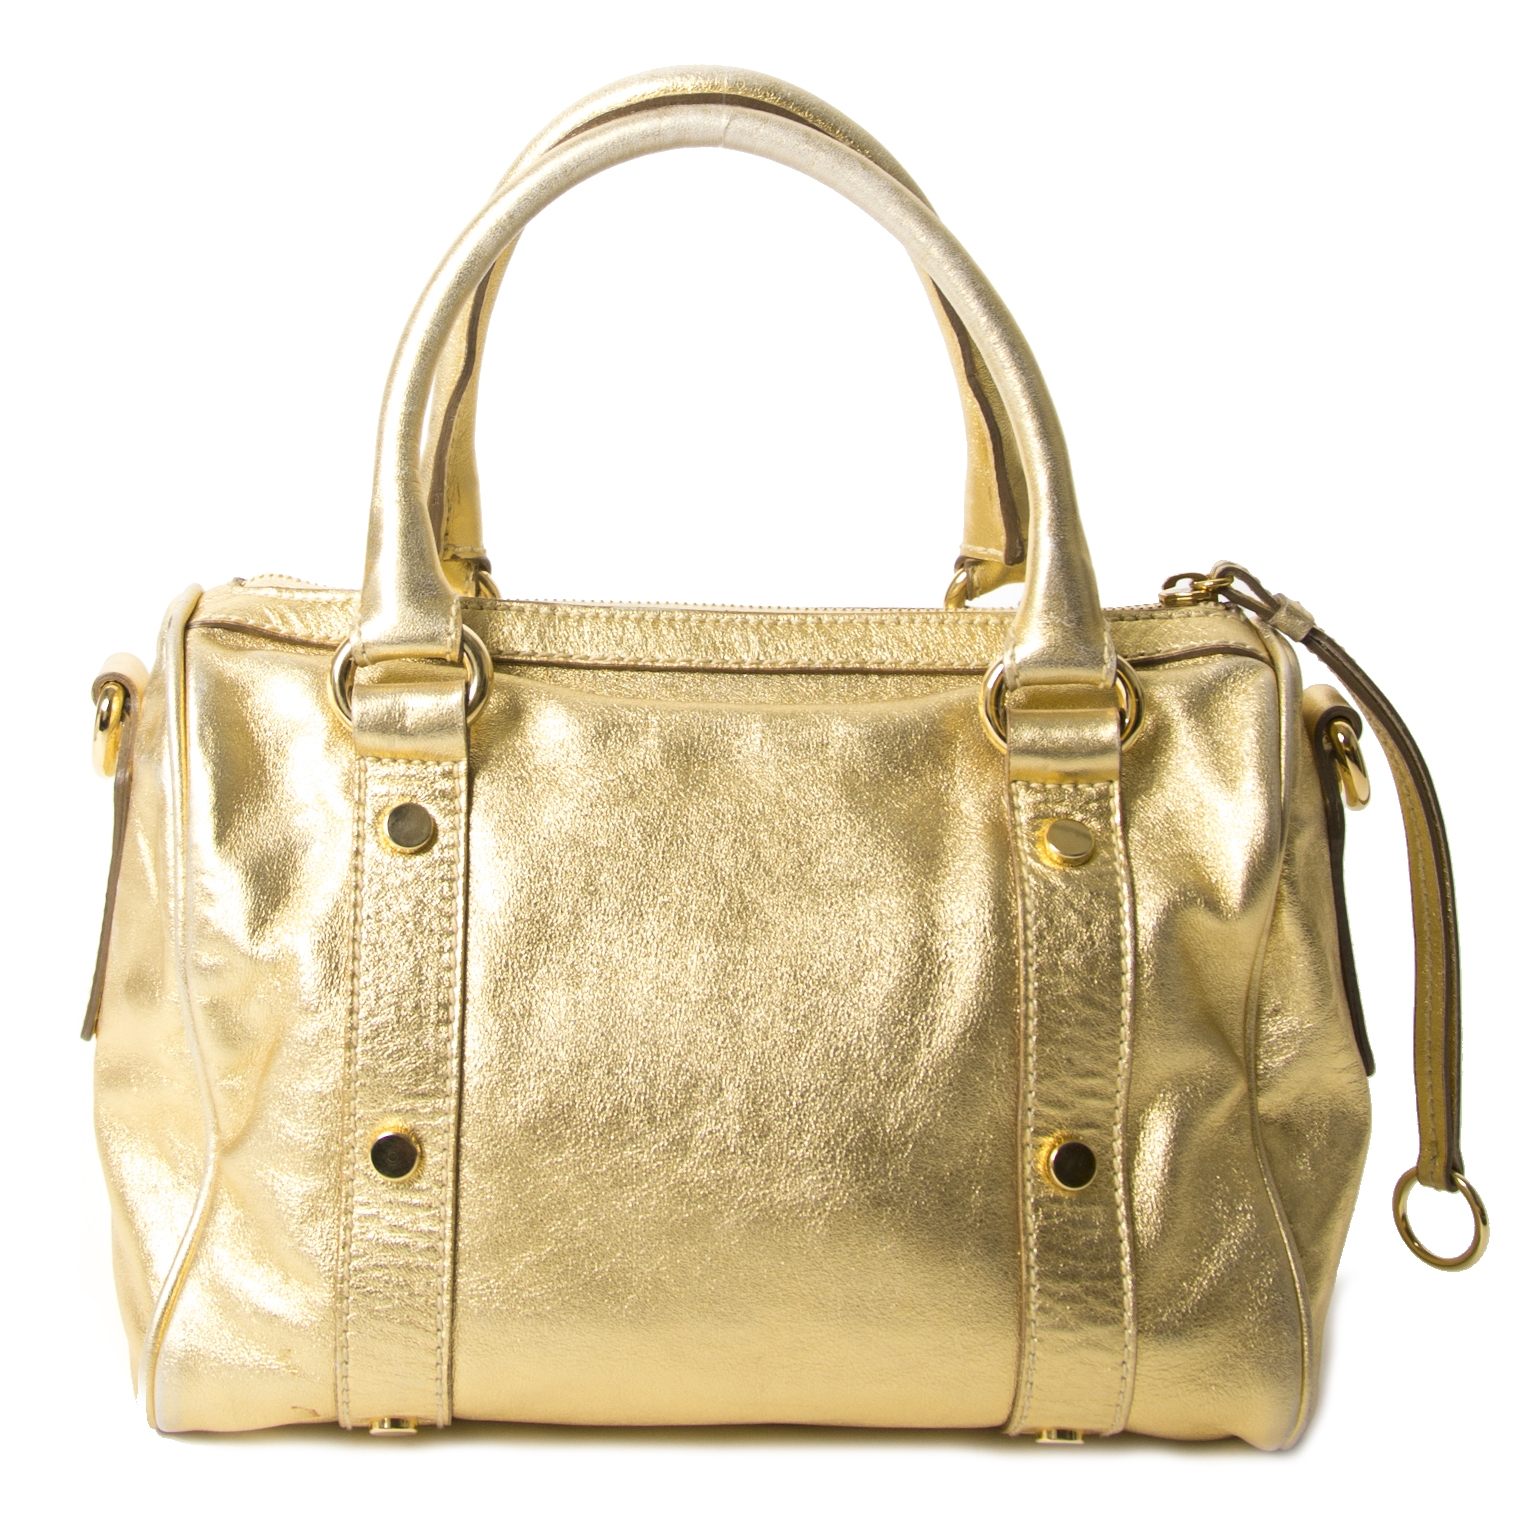 Koop uw authentieke Dolce & Gabbana Gold Metallic Speedy Bag